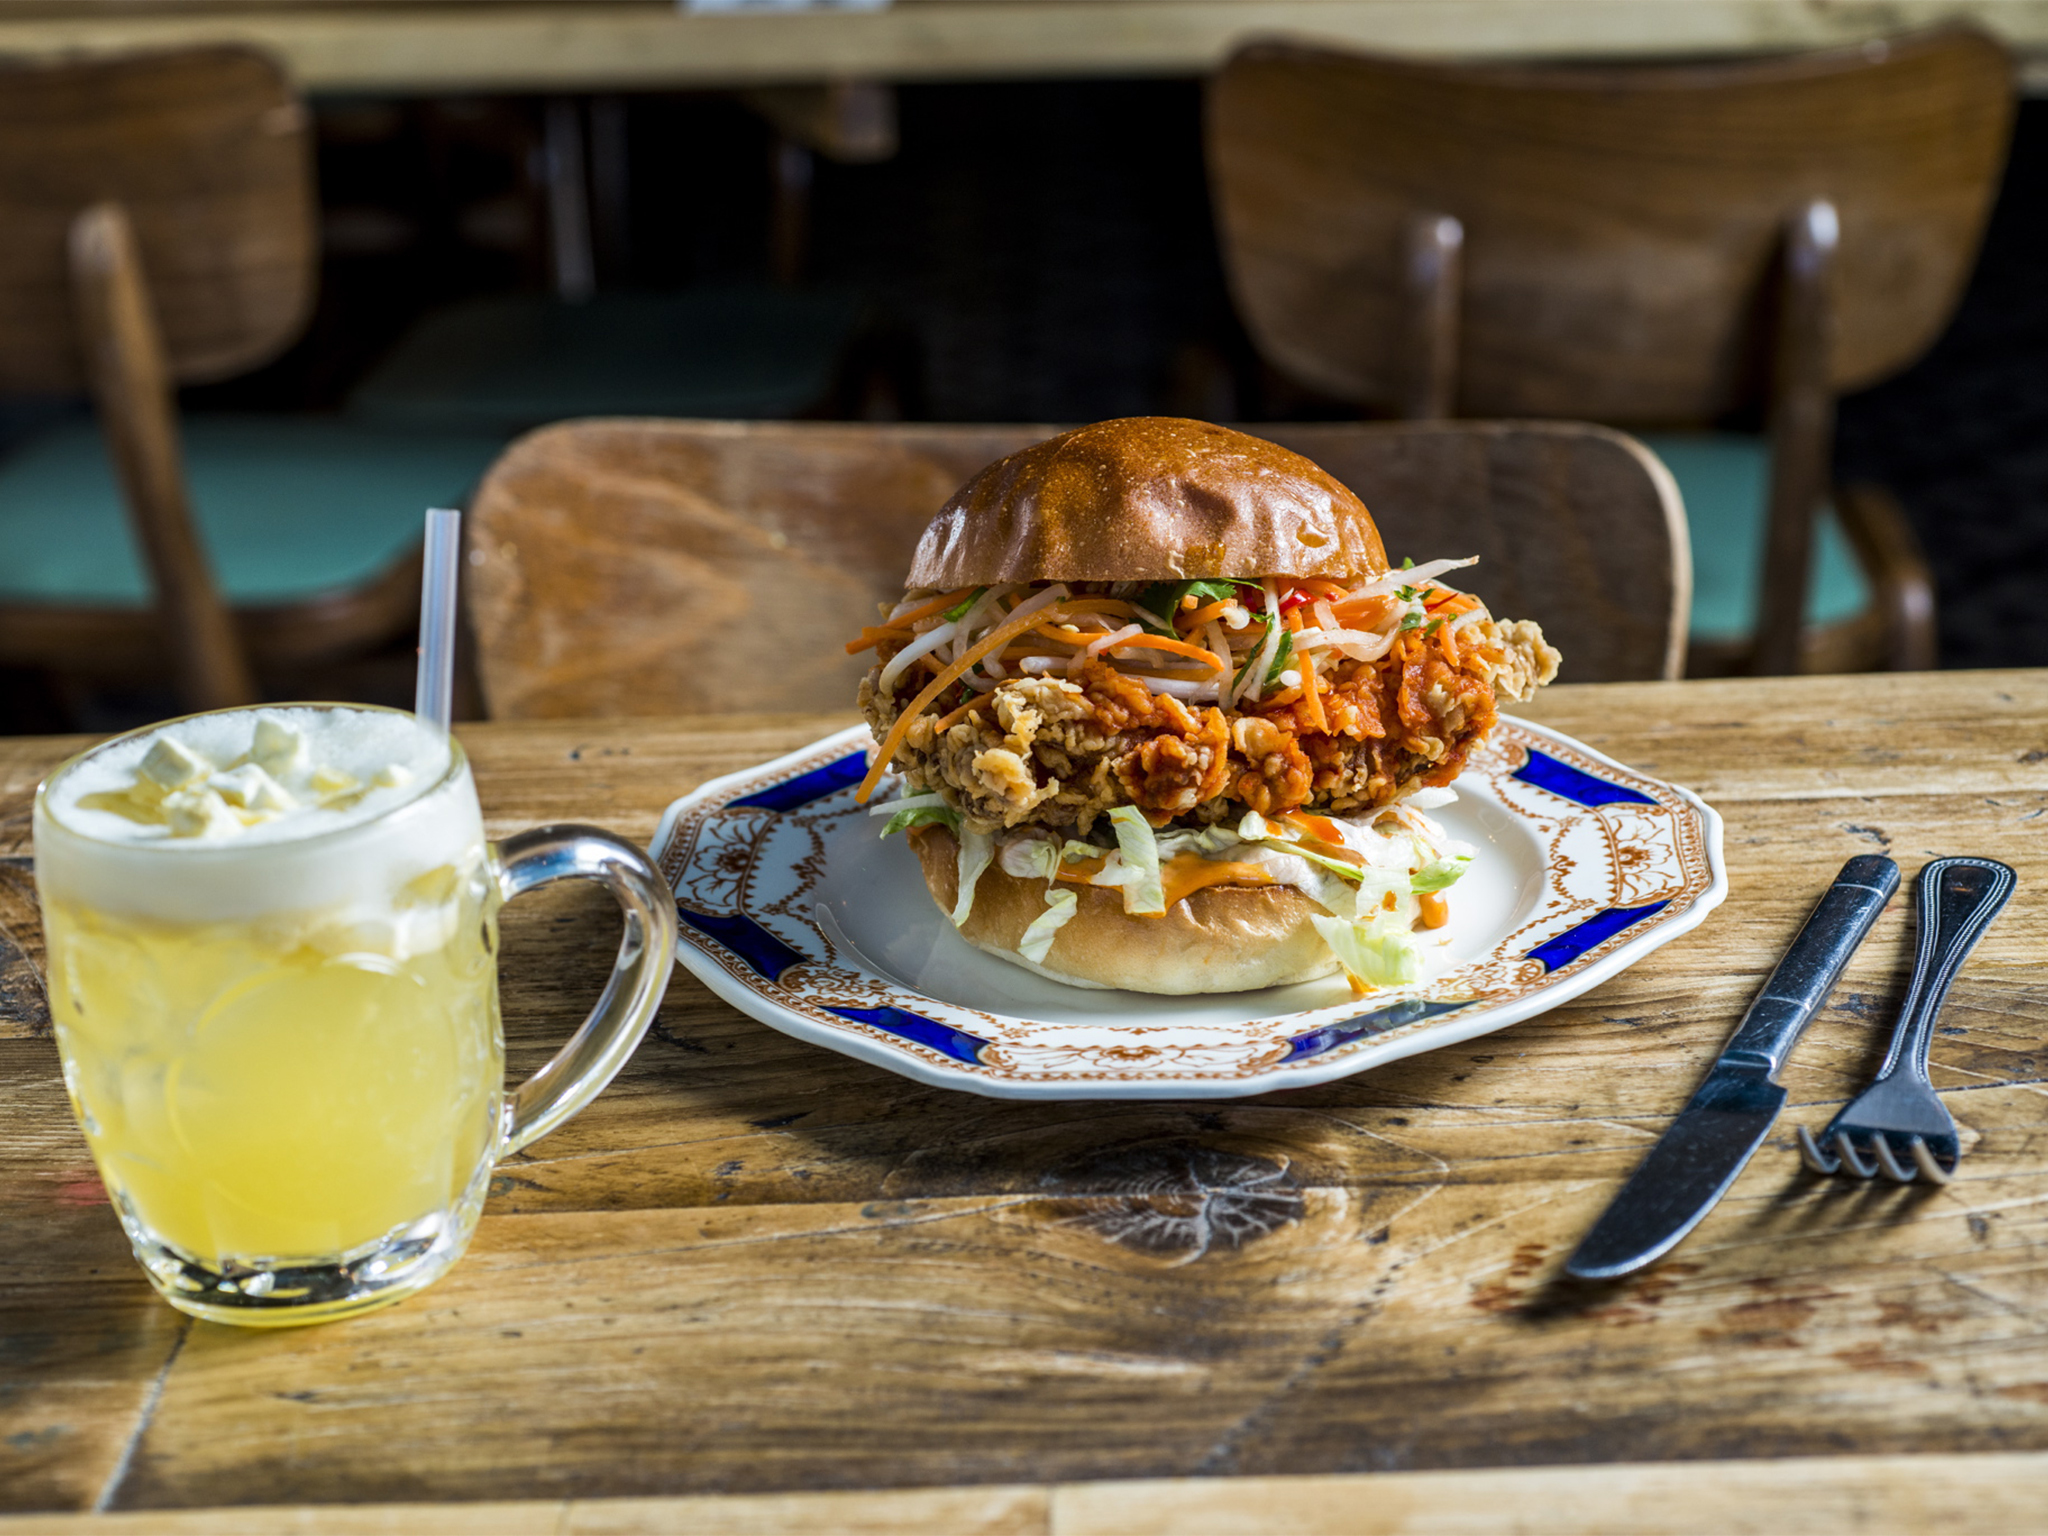 100 best dishes in london, chick n sours, korean k pop burger